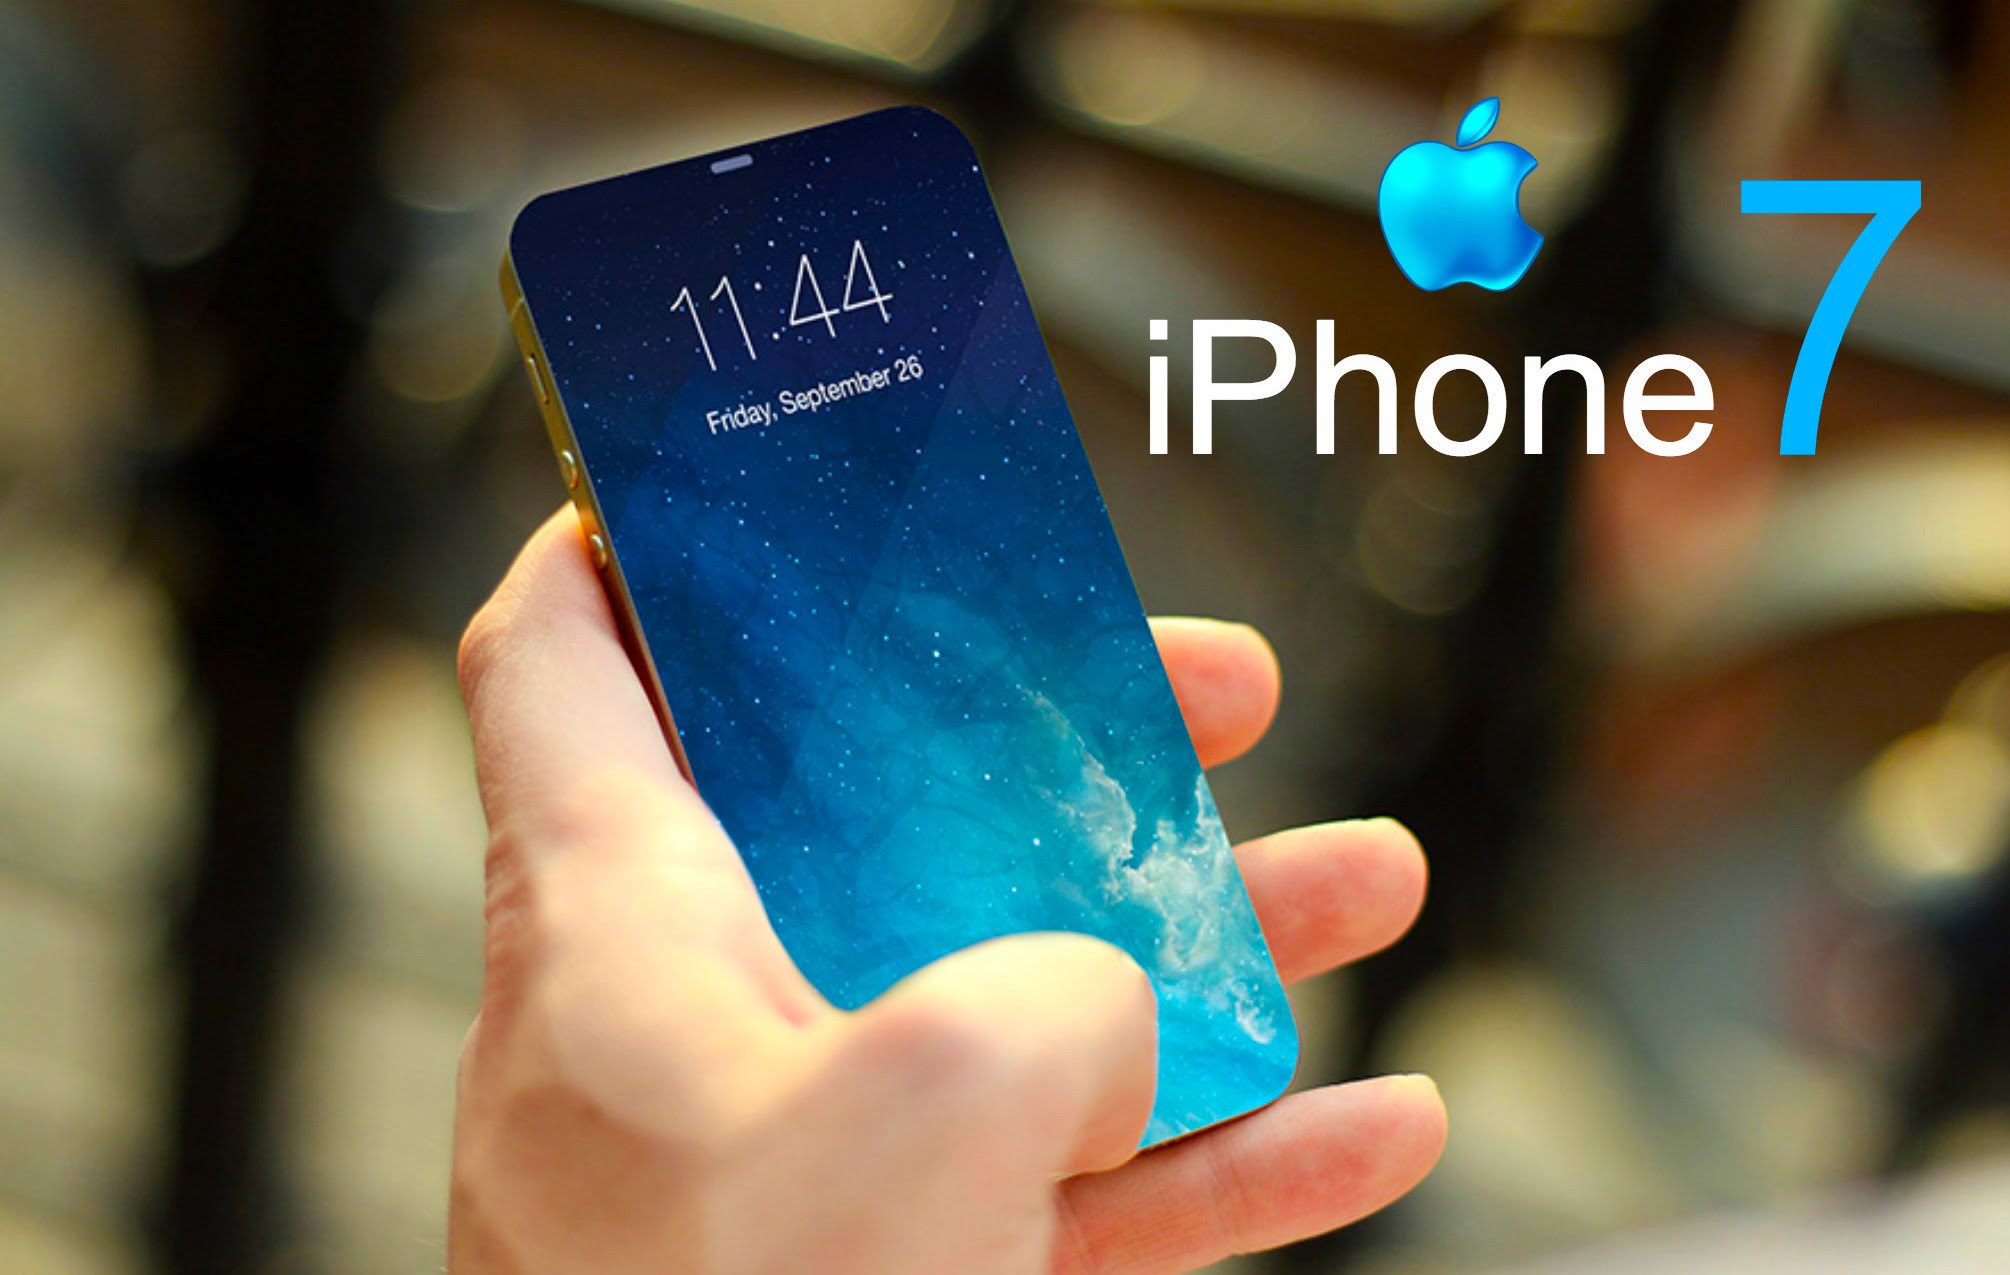 Apple iPhone 7 new features  include IPX7 water resistance and more iPhone 7 details